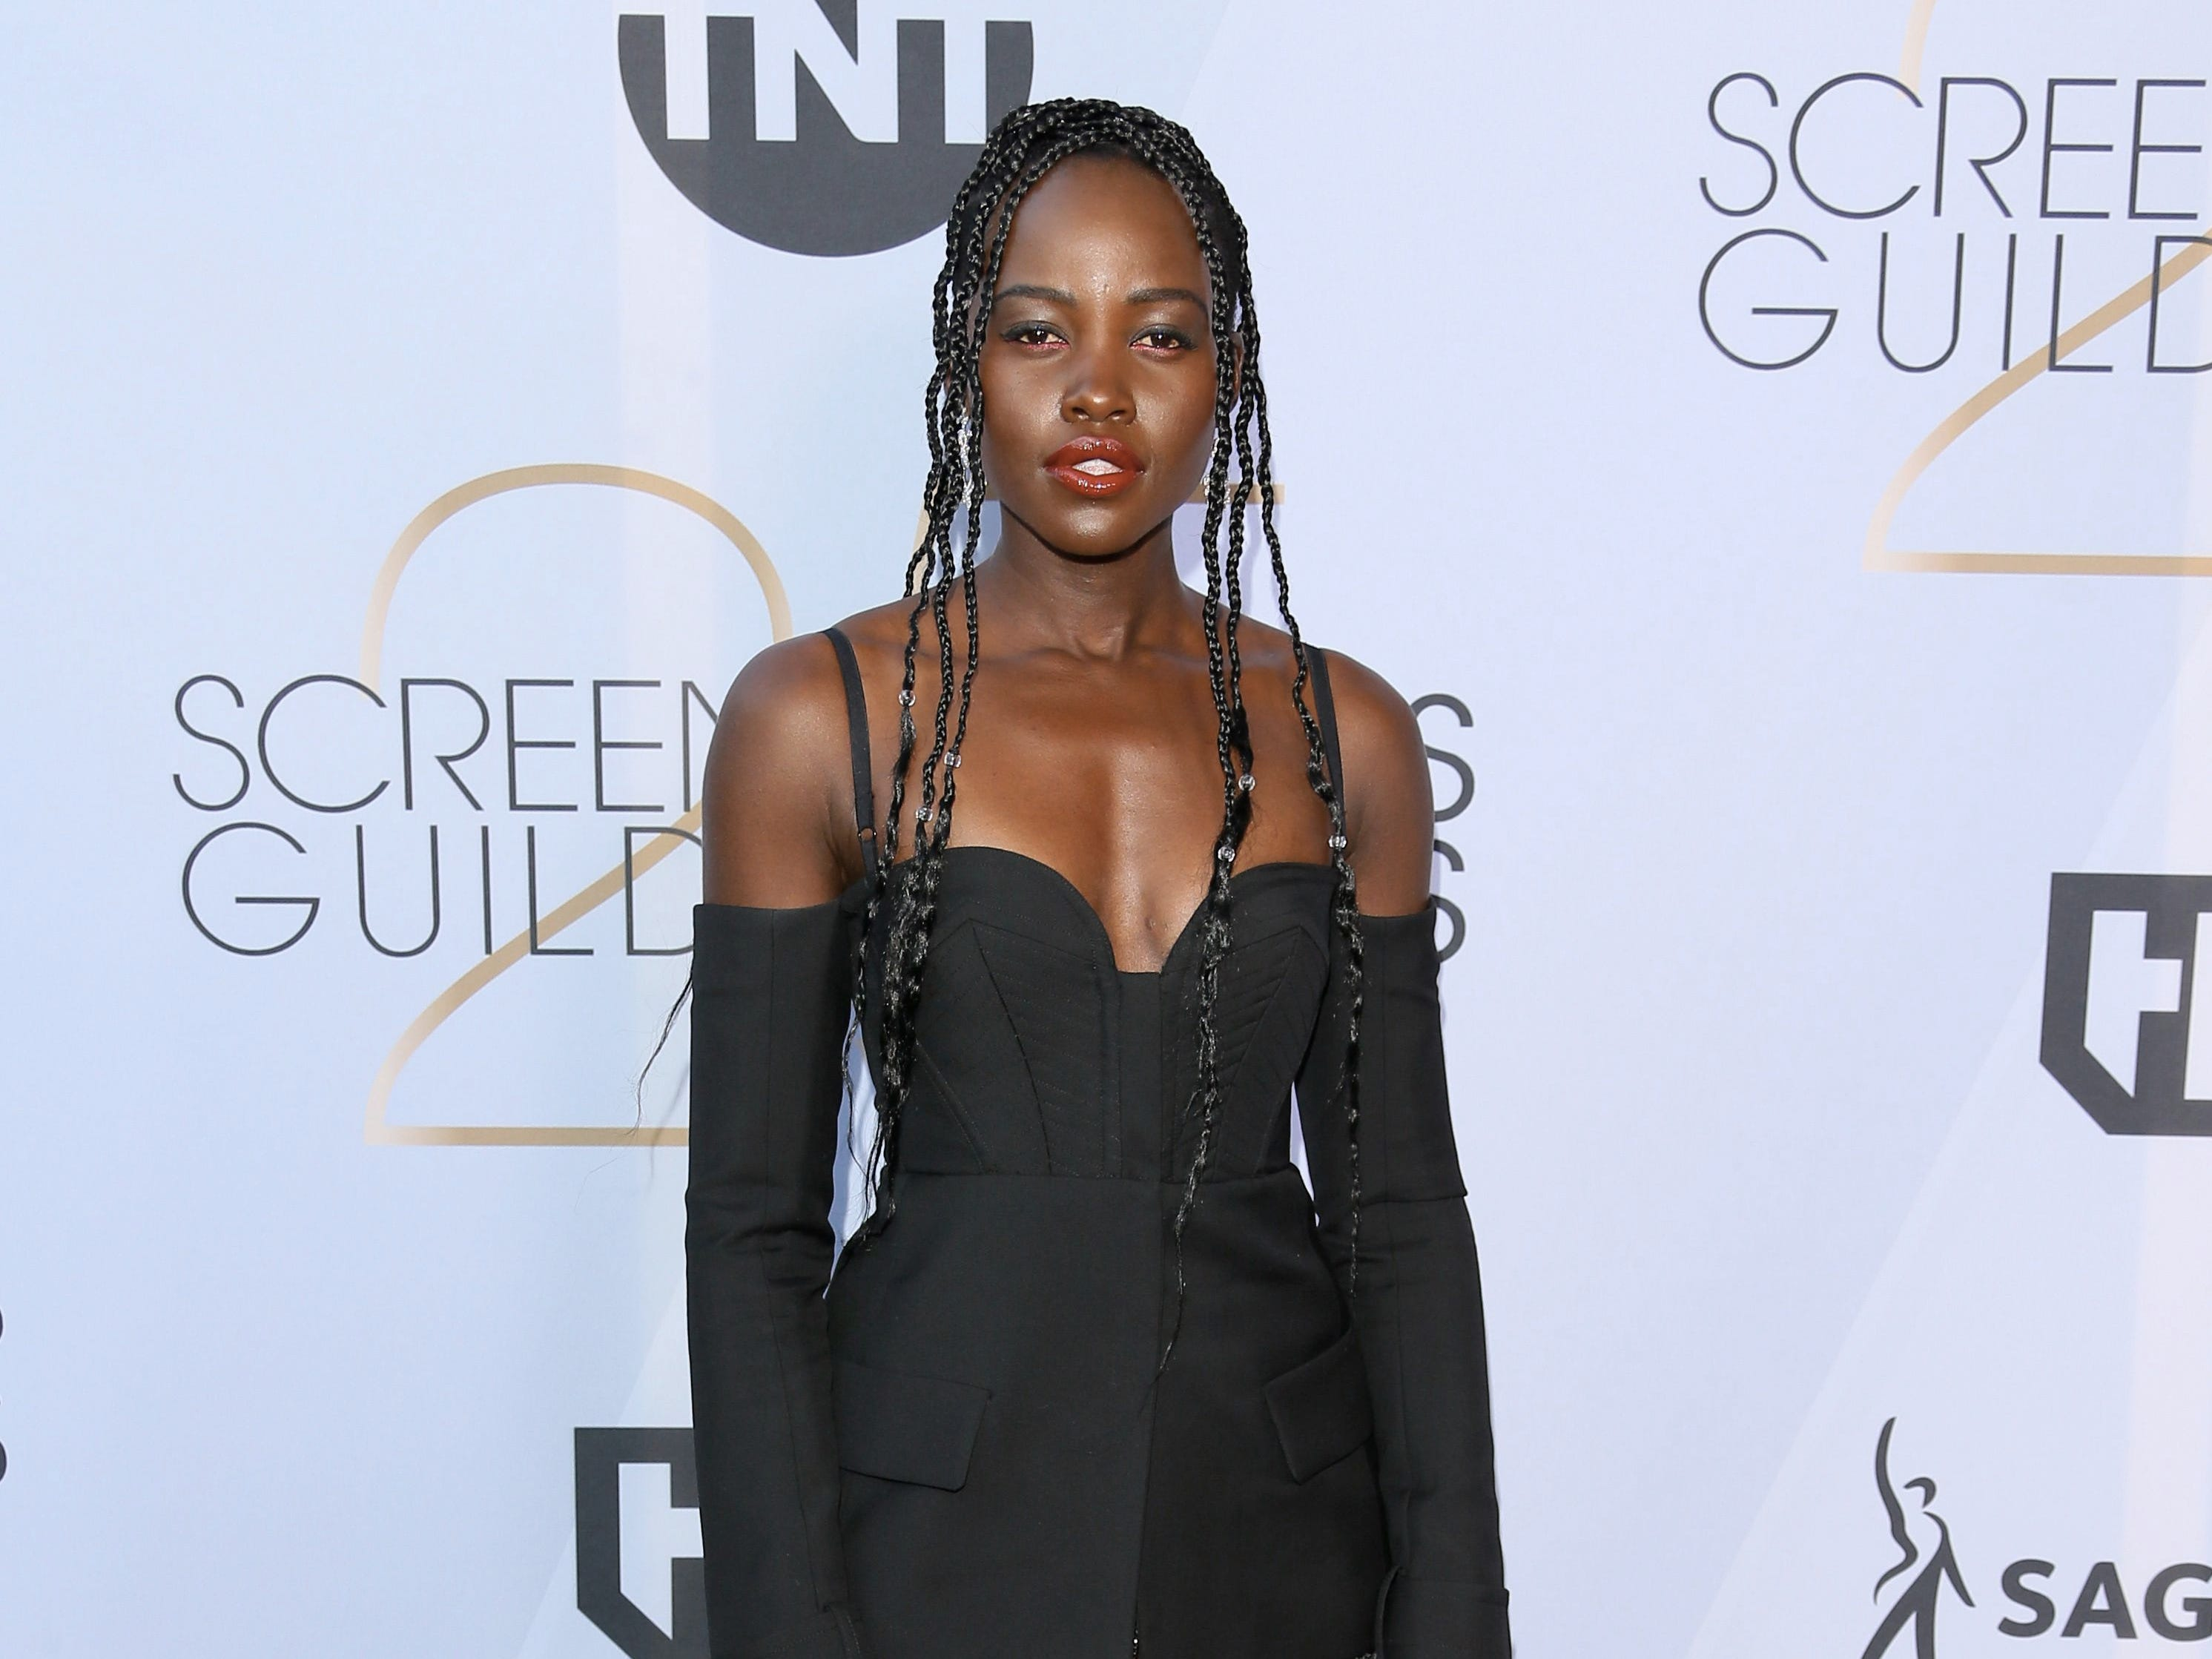 Actress Lupita Nyong'o arrives for the 25th Annual Screen Actors Guild Awards at the Shrine Auditorium in Los Angeles on January 27, 2019. (Photo by Jean-Baptiste LACROIX / AFP)JEAN-BAPTISTE LACROIX/AFP/Getty Images ORG XMIT: 25th Annu ORIG FILE ID: AFP_1CQ8UN